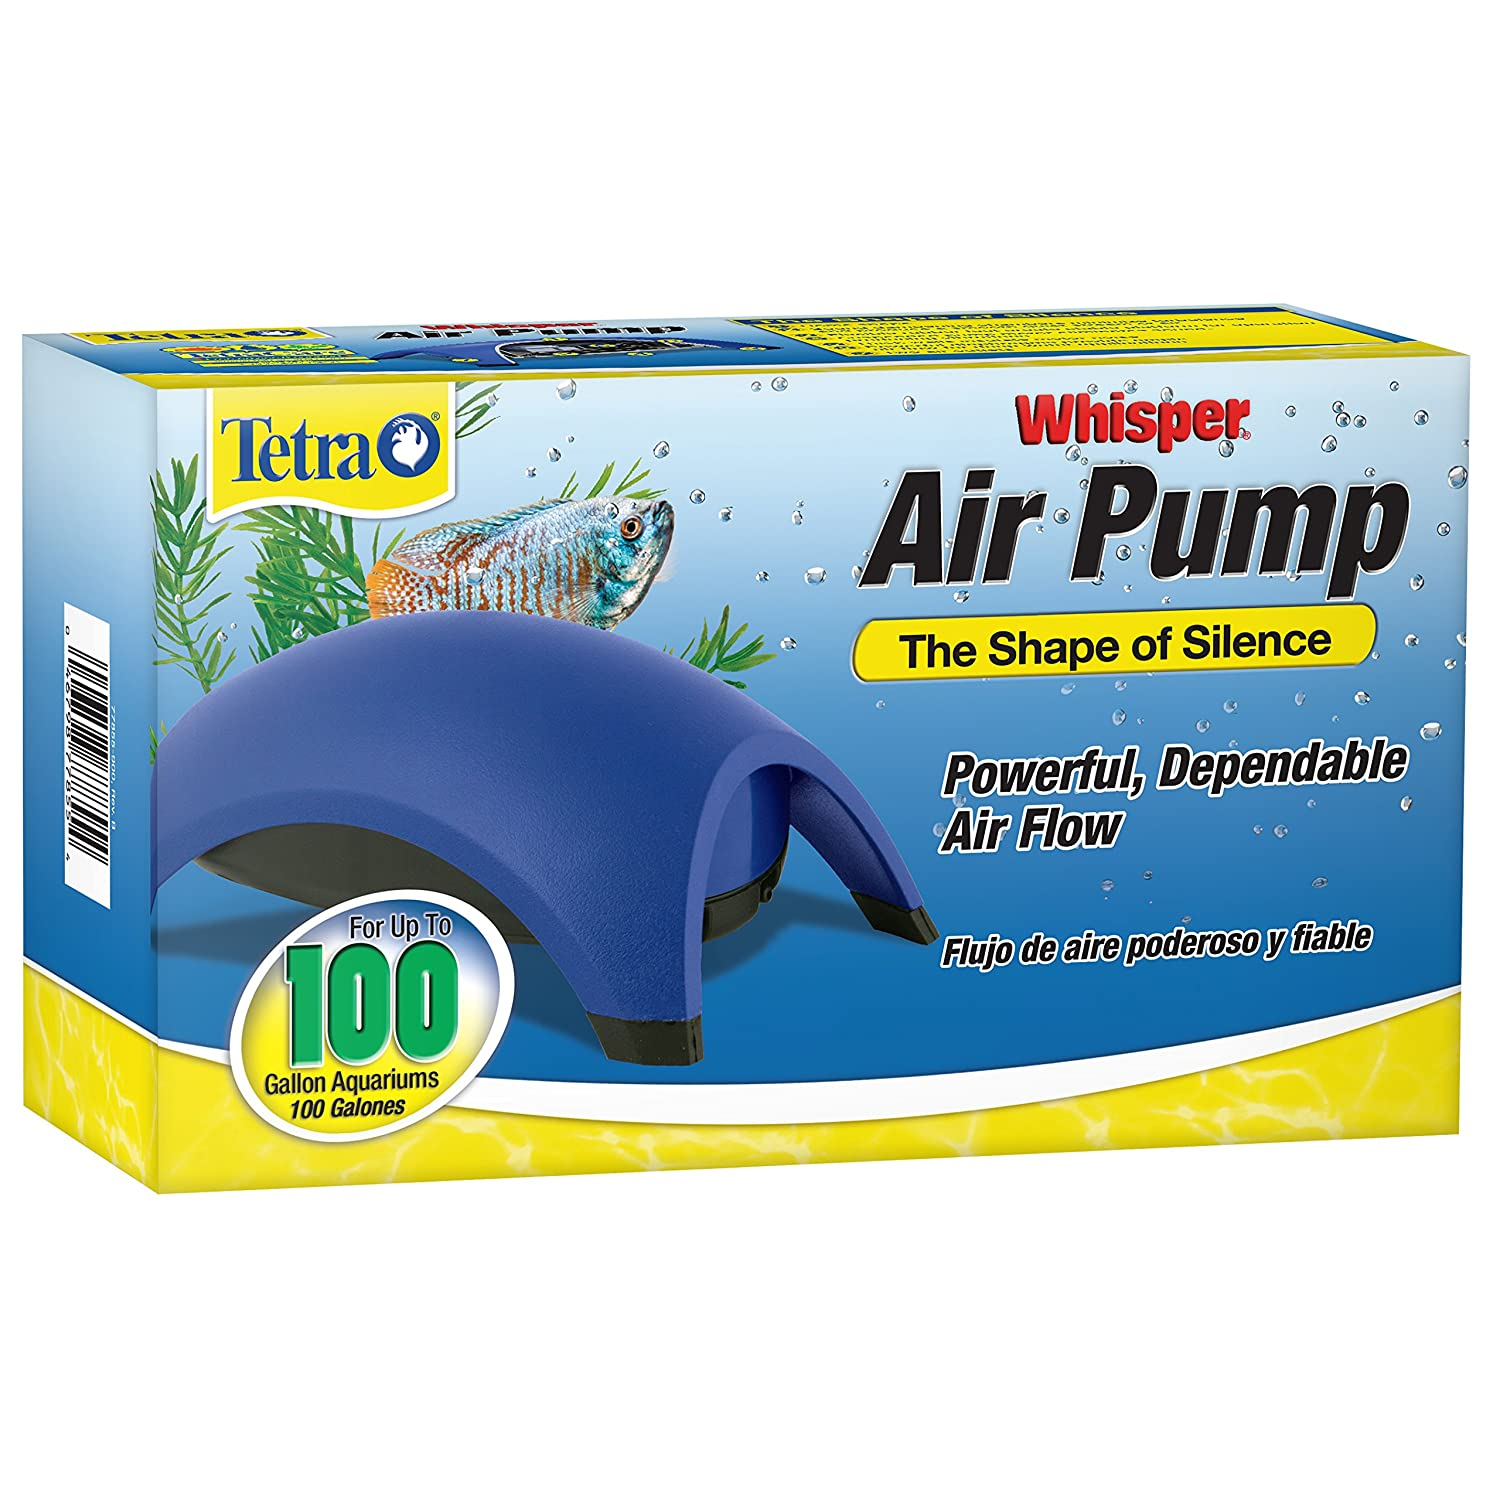 919Nc0VheXL._SL1500_ amazon com tetra 77855 whisper air pump, 100 gallon aquarium  at mr168.co